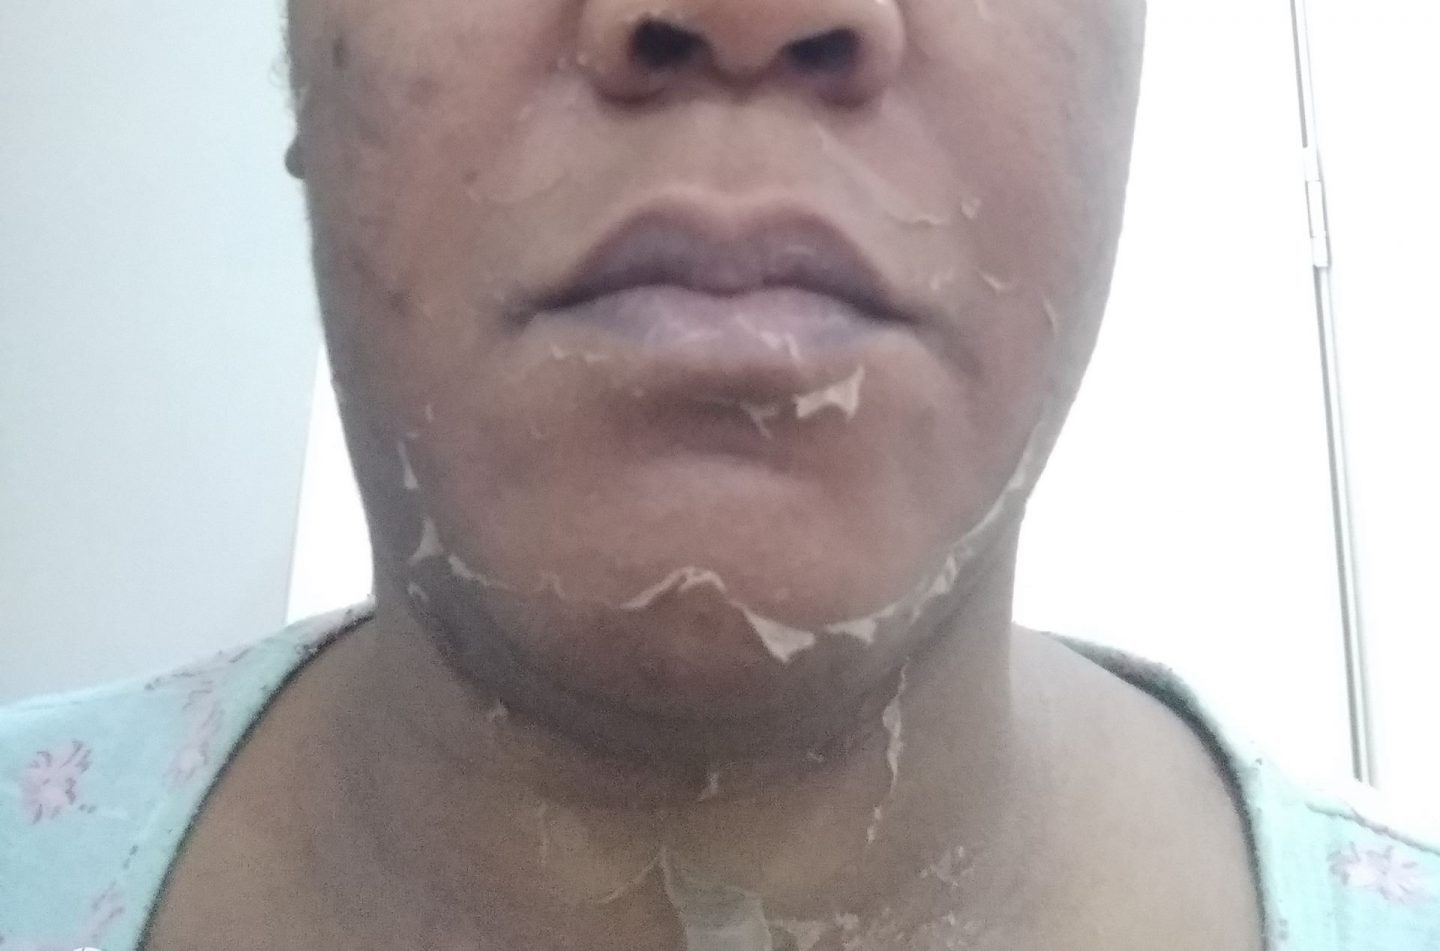 My chemical peel experience in Abuja -Nigeria